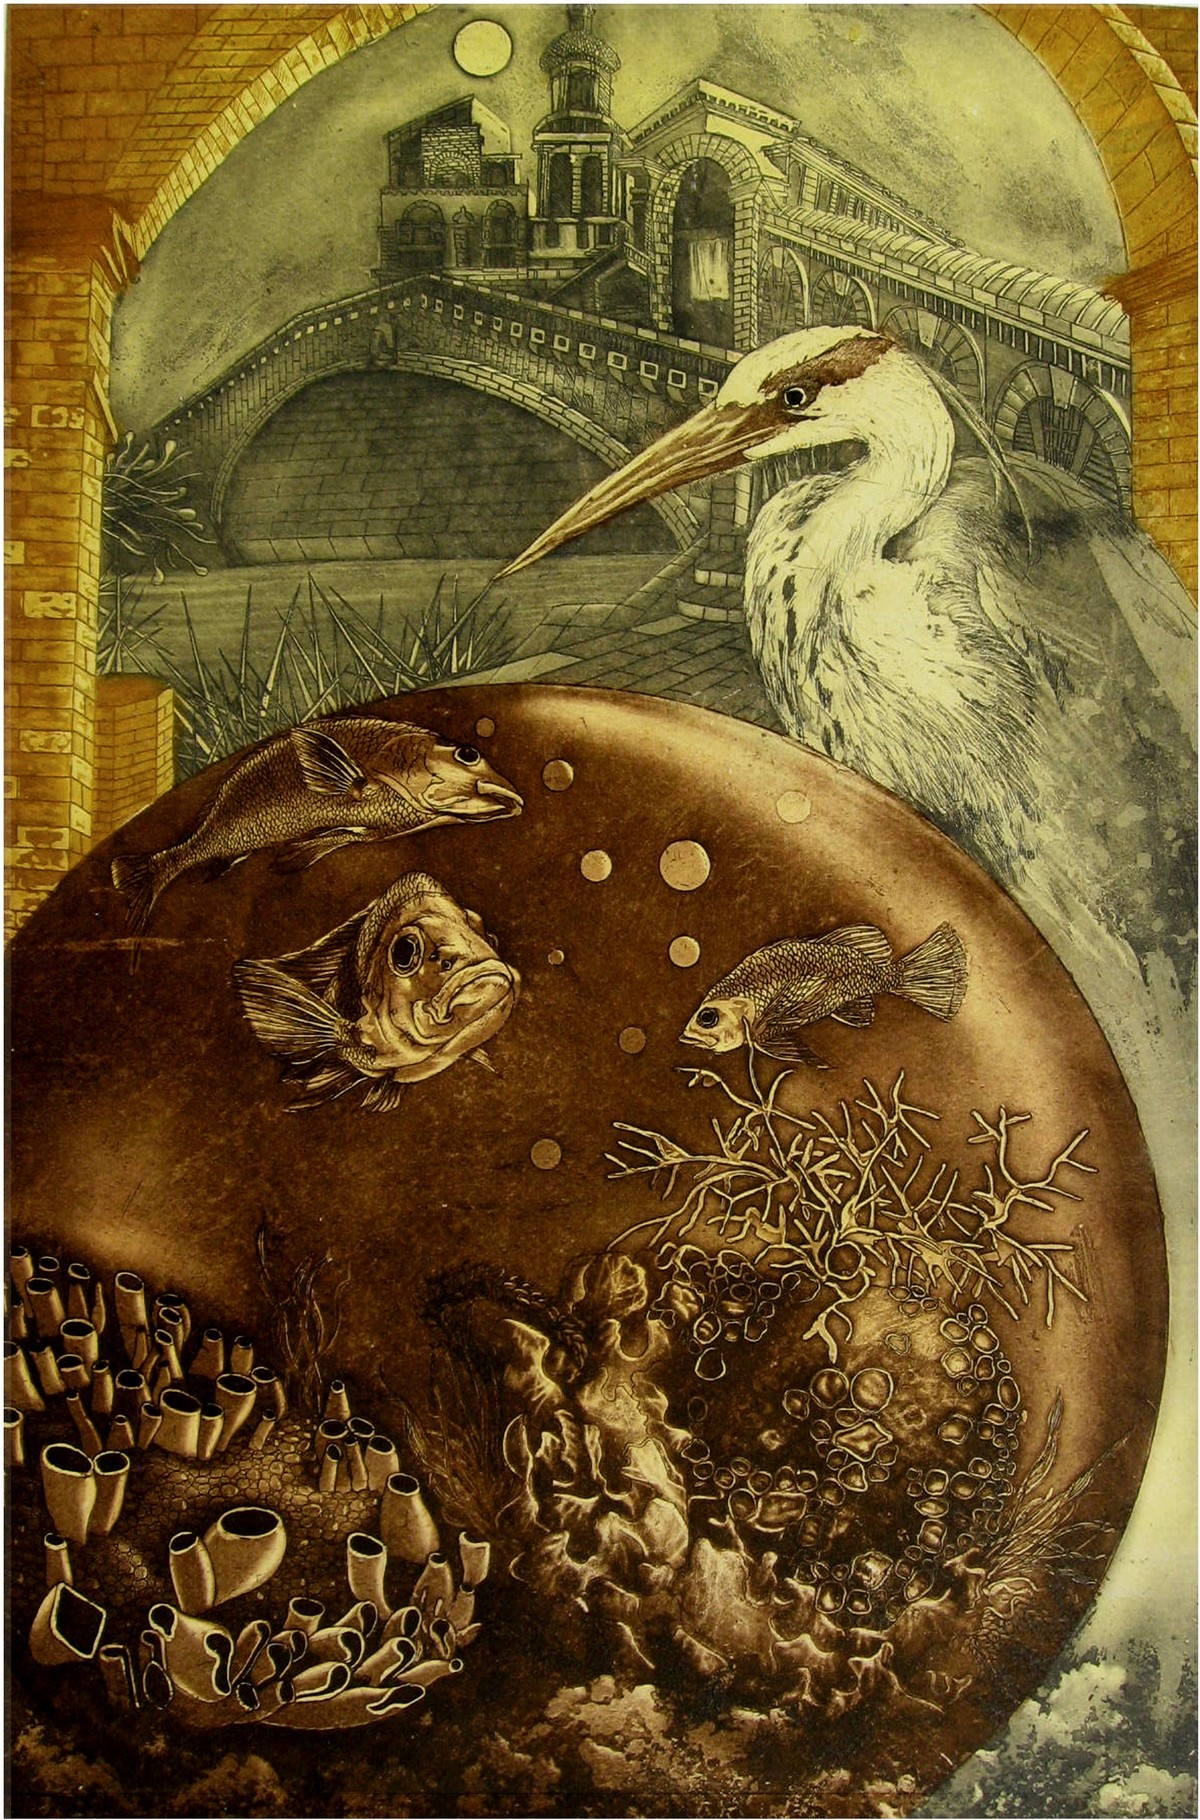 Awaiting by Jyotirmay Dalapati, Surrealism Printmaking, Etching on Paper, Brown color